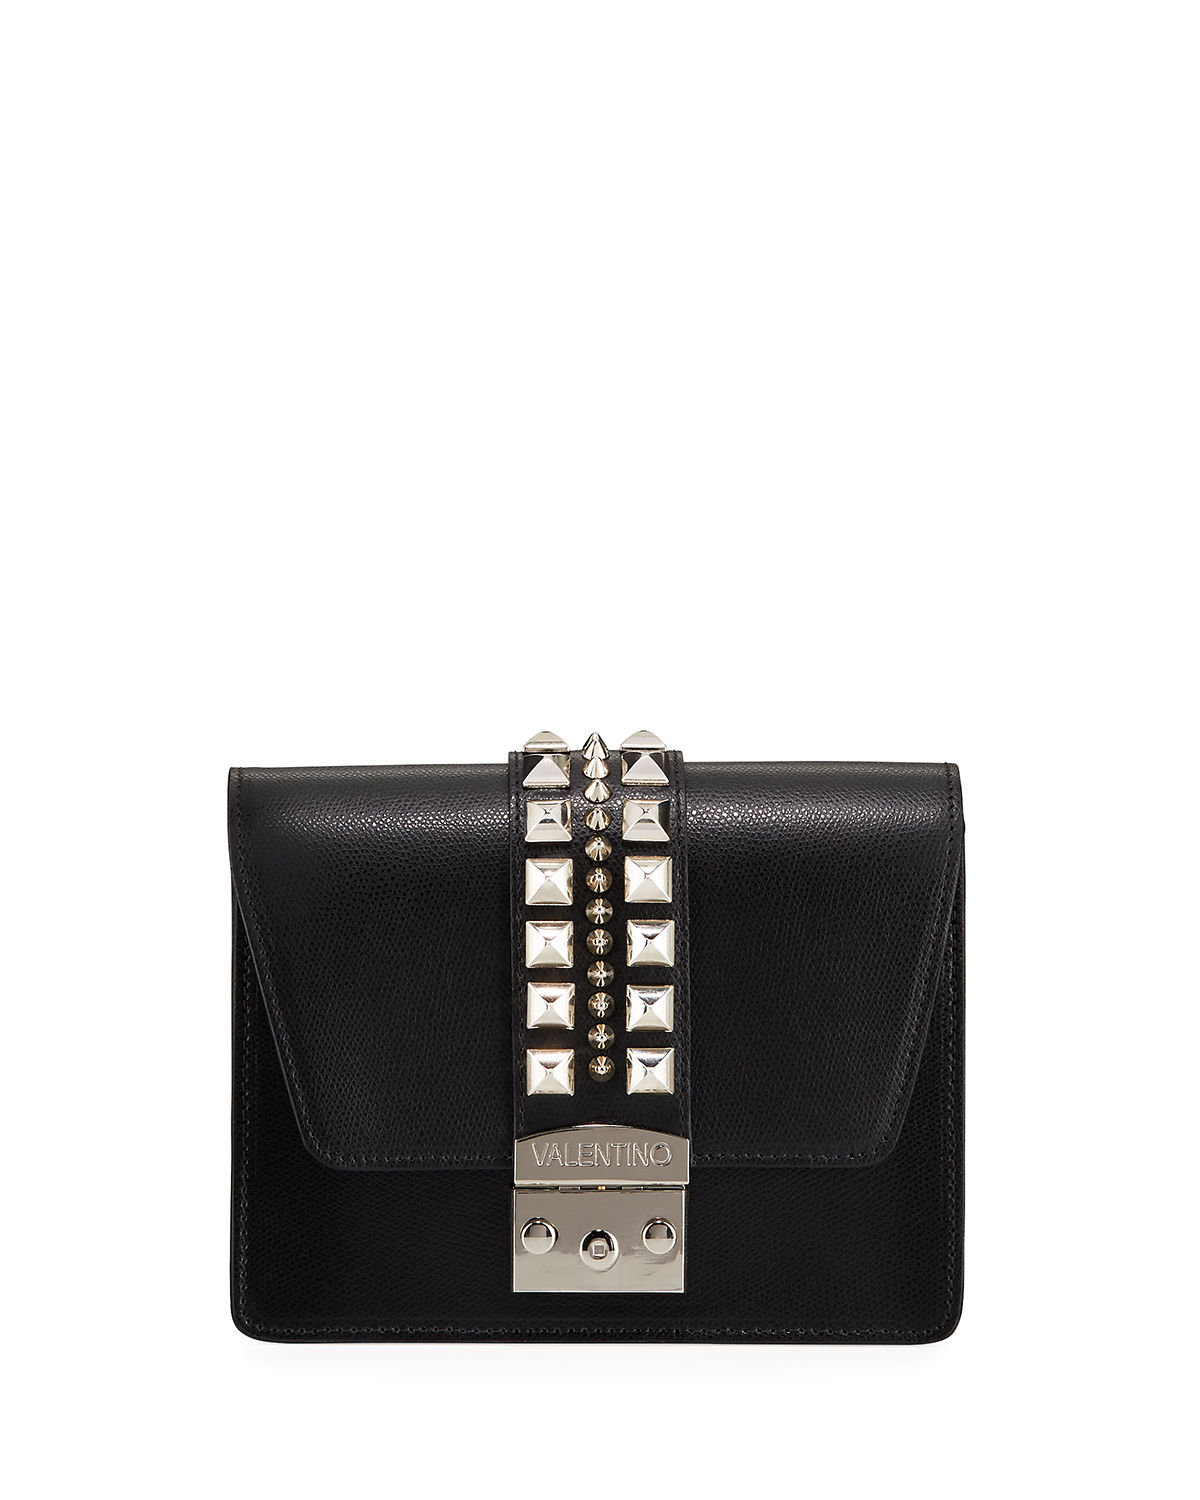 VALENTINO BY MARIO VALENTINO BENEDICTE STUDDED LEATHER CROSSBODY BAG